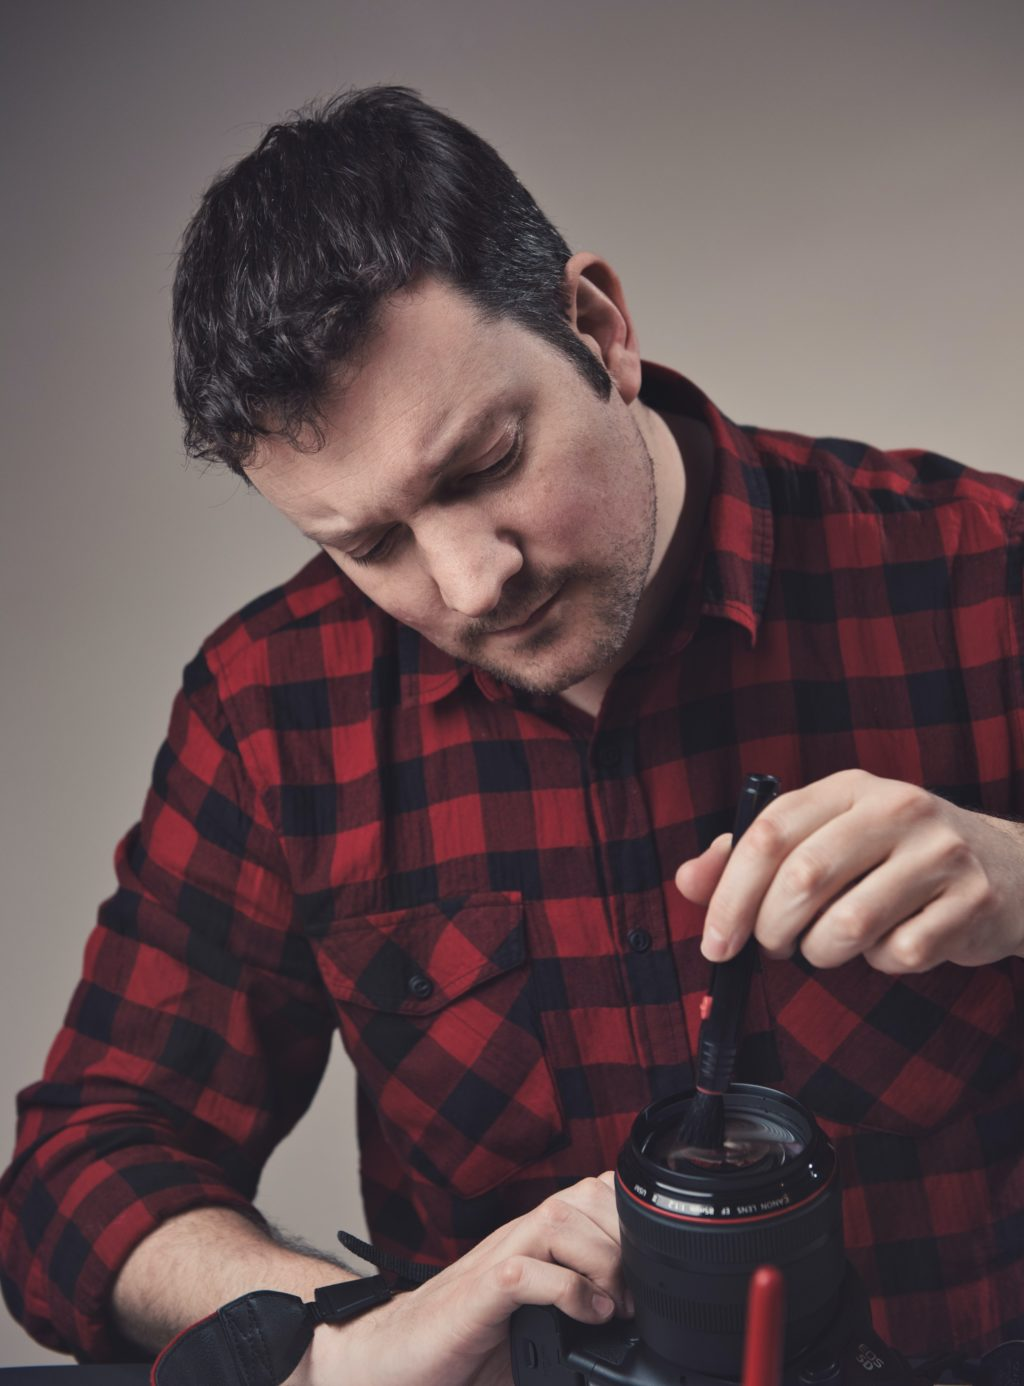 man cleaning camera lens.